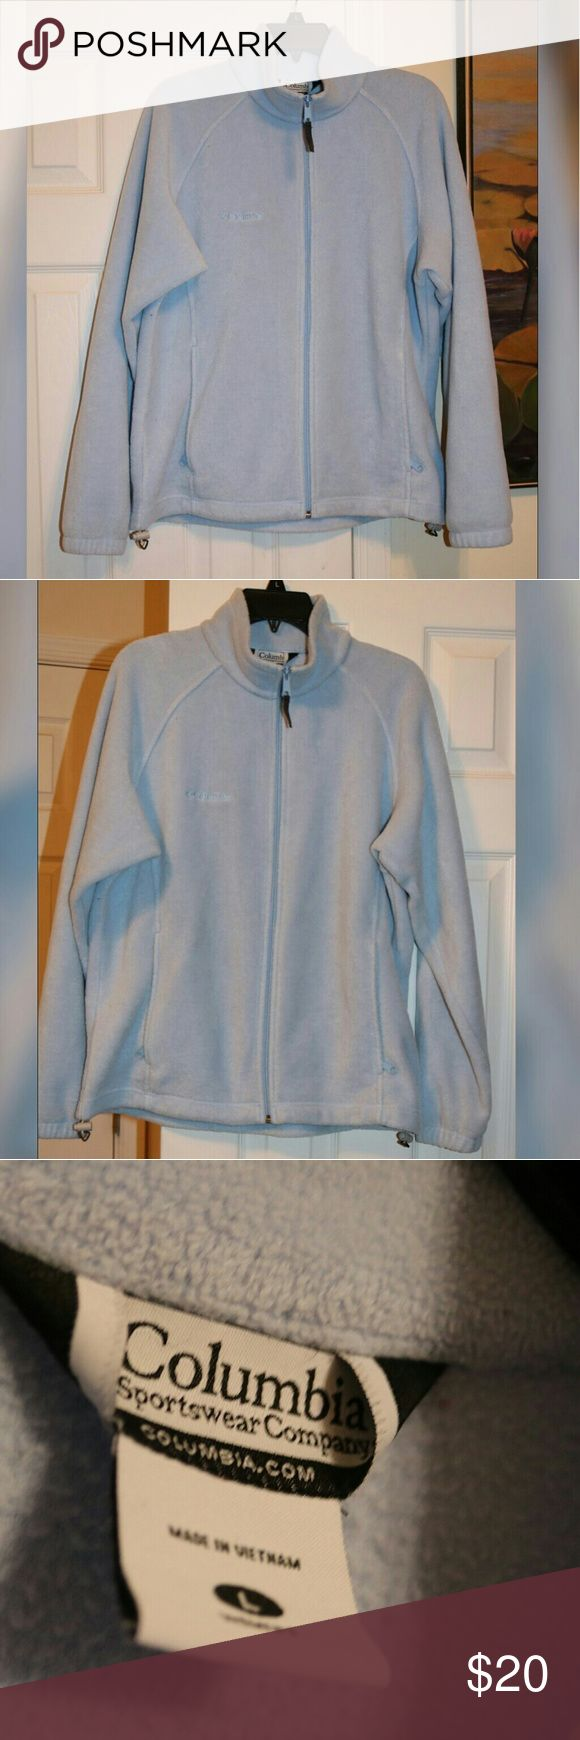 Columbia Sportswear Company Jacket Size L Great soft jacket .Excellent condition . Columbia Sportswear Company Jackets & Coats